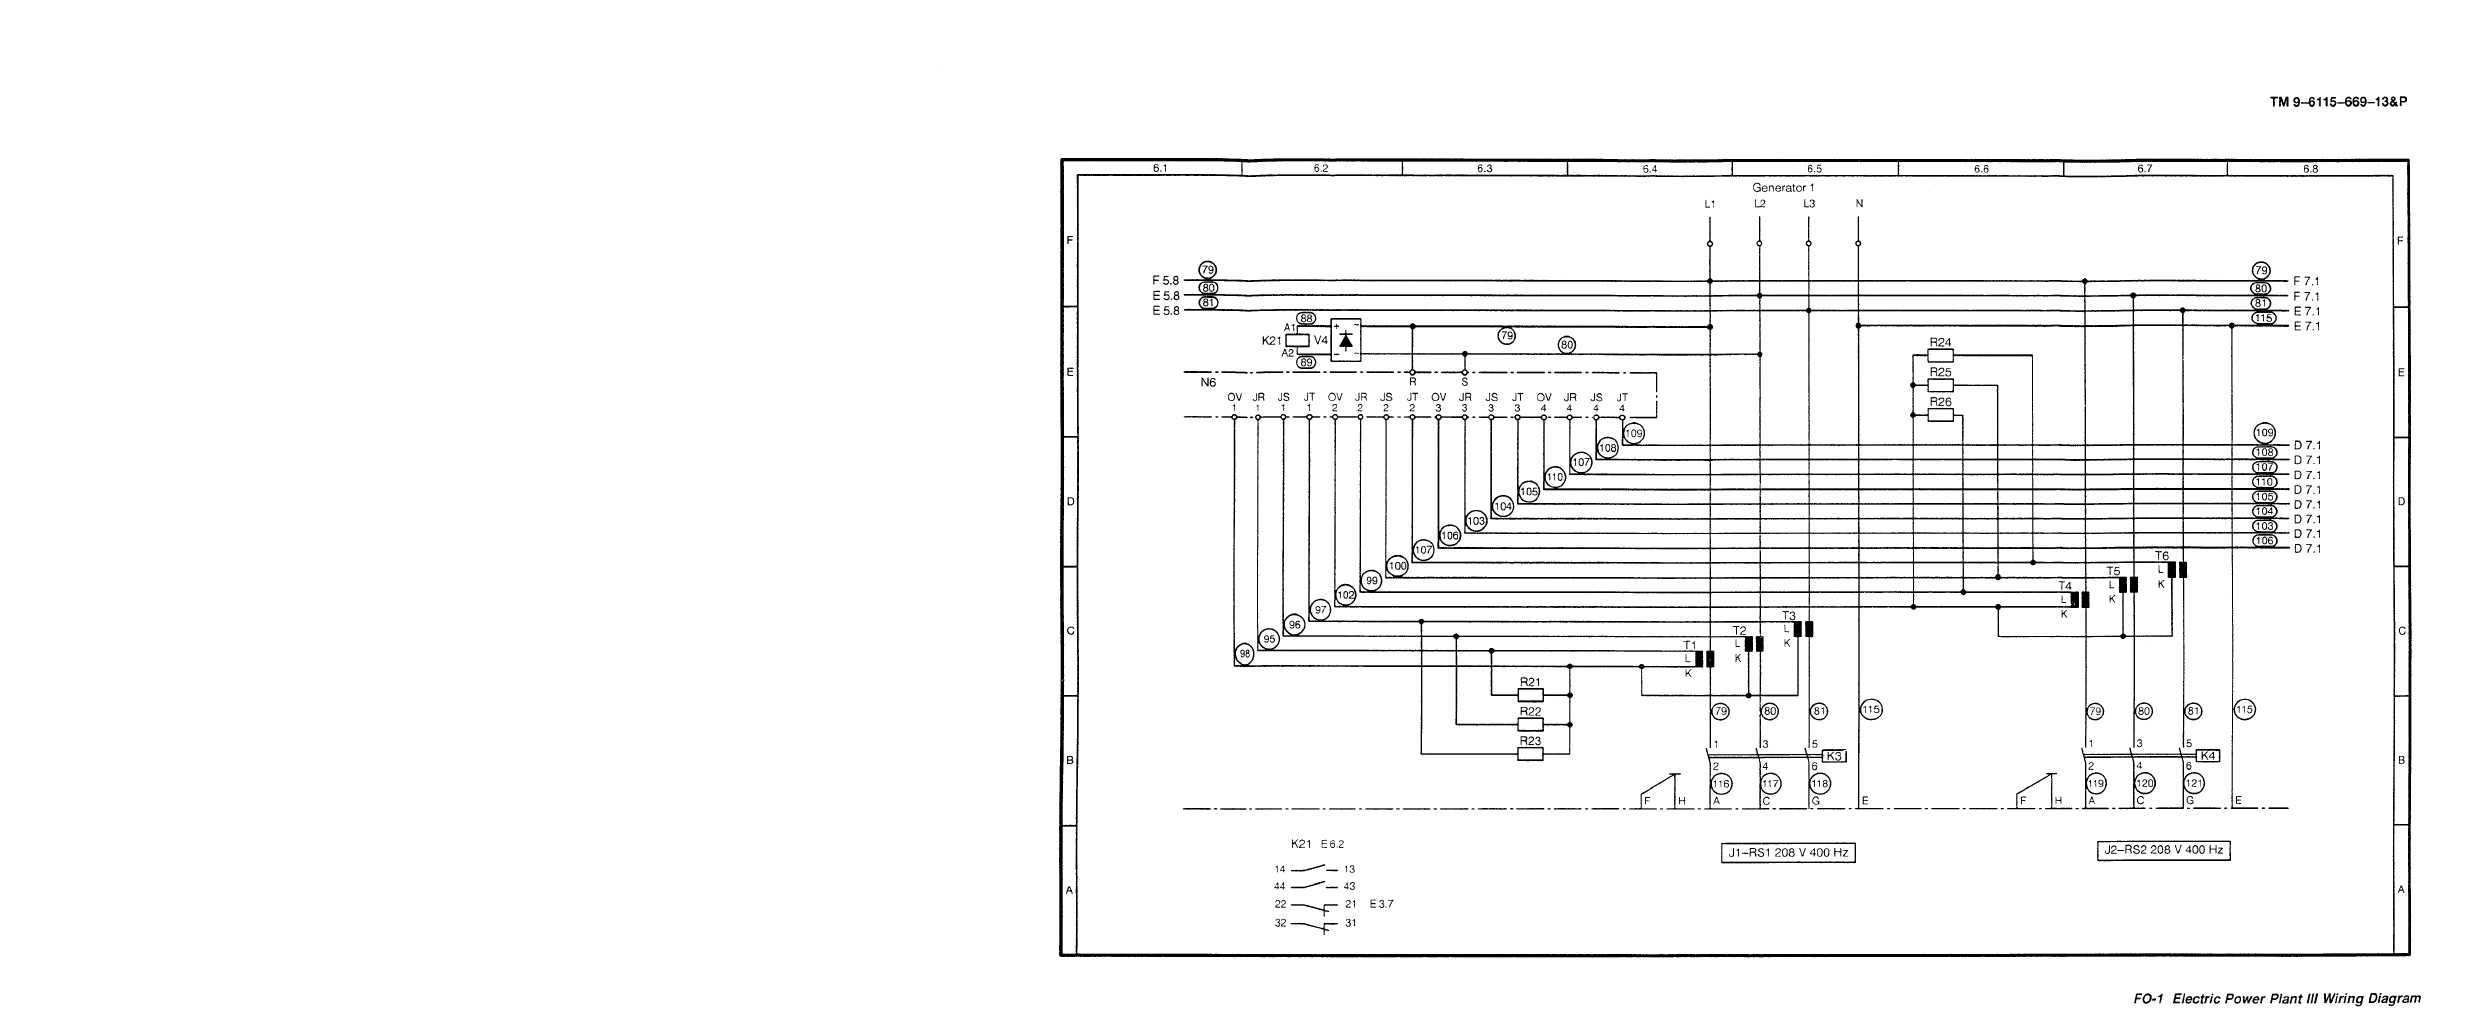 Fo 1 Electric Power Plant Iii Wiring Diagram Cont Tm 9 6115 669 Diesel Generator 13p Set Engine Driven Skid Mounted 150 Kw 400 Hz Alternating Current Manual Page Navigation